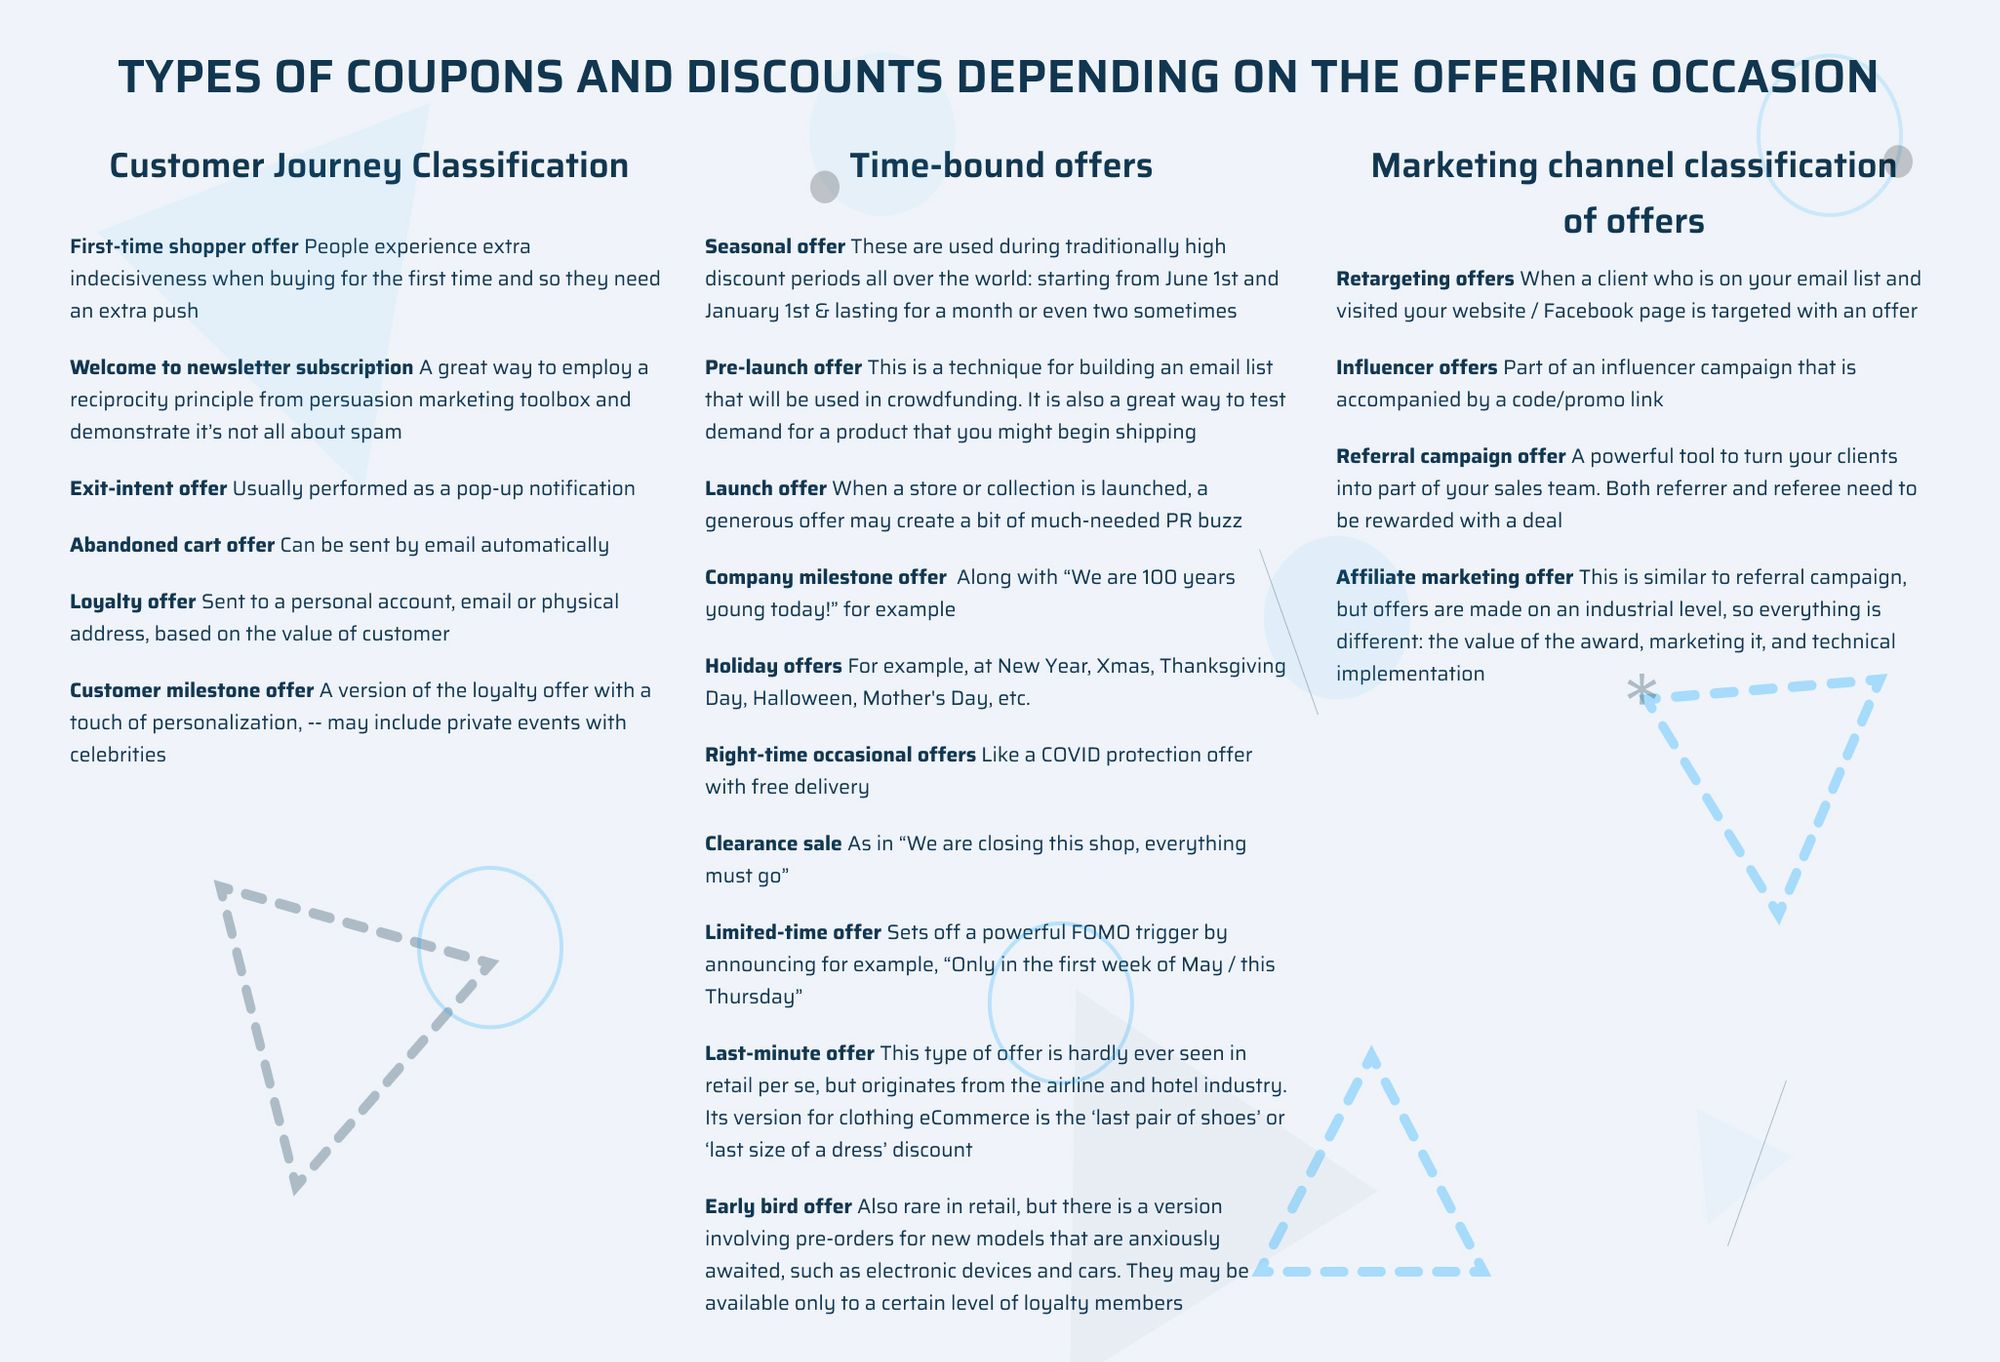 types of coupons and discounts depending on the offering occasion